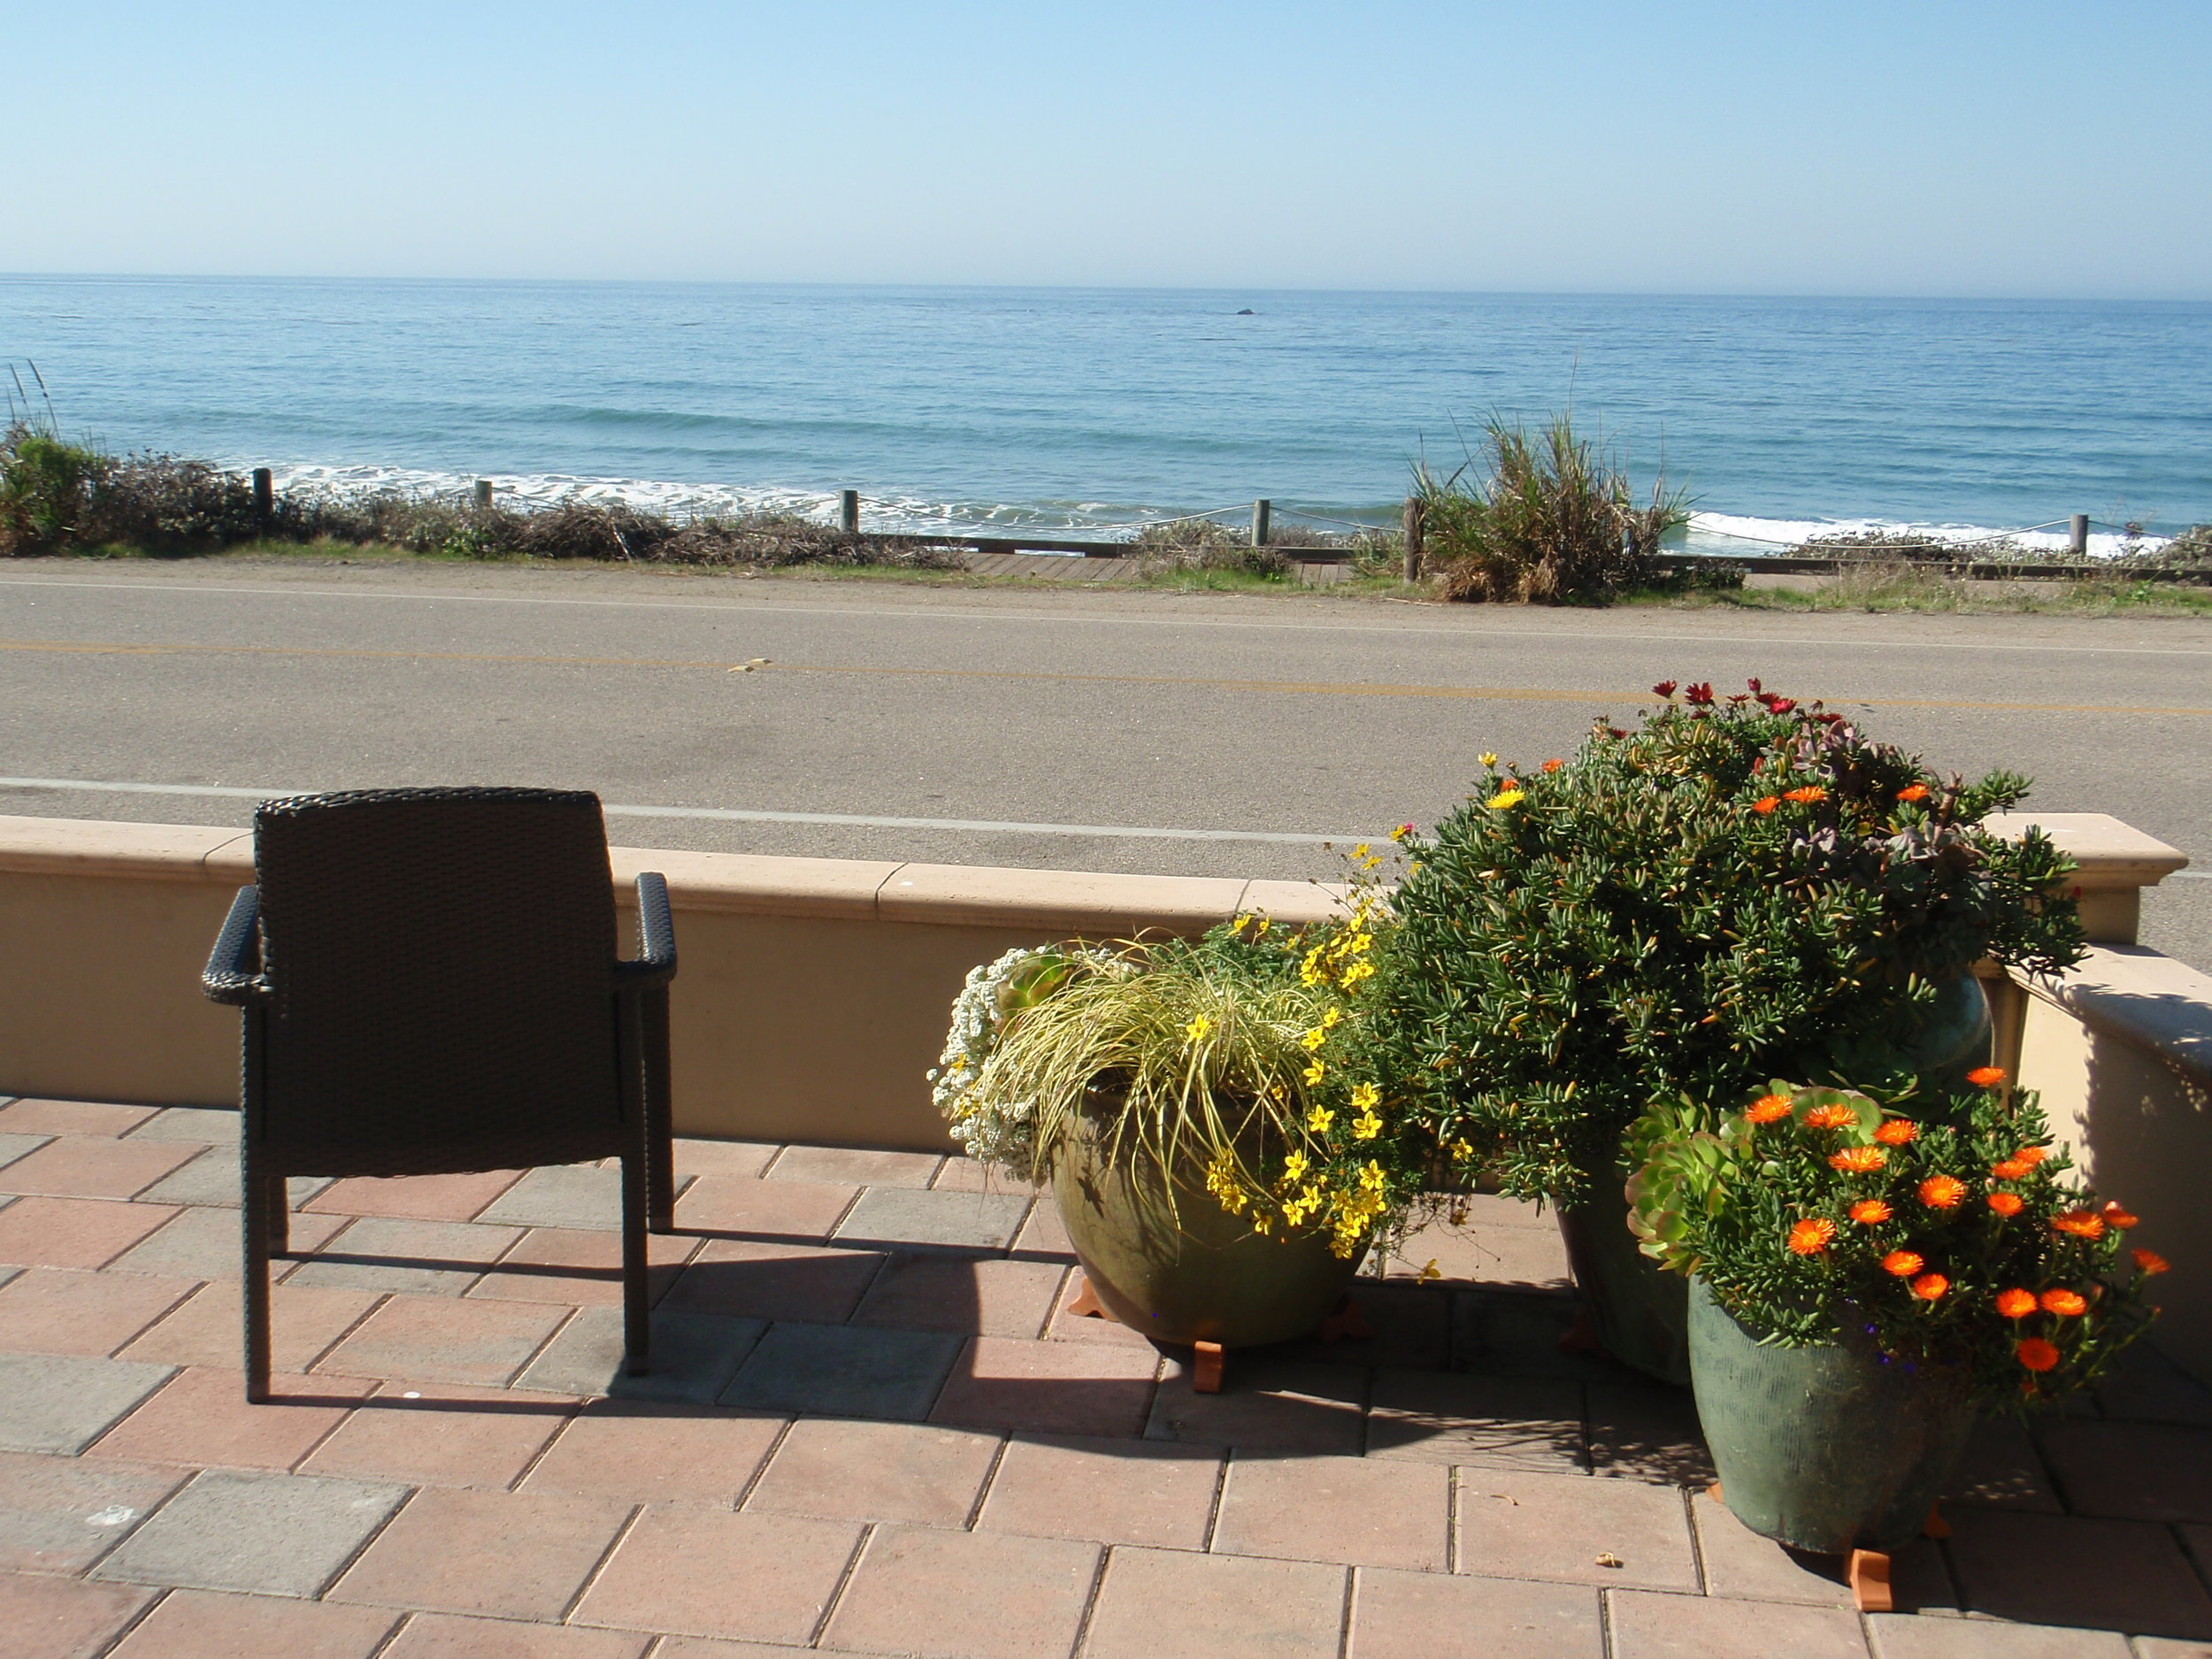 Ocean view from the Blue Dolphin Inn, Cambria, CA